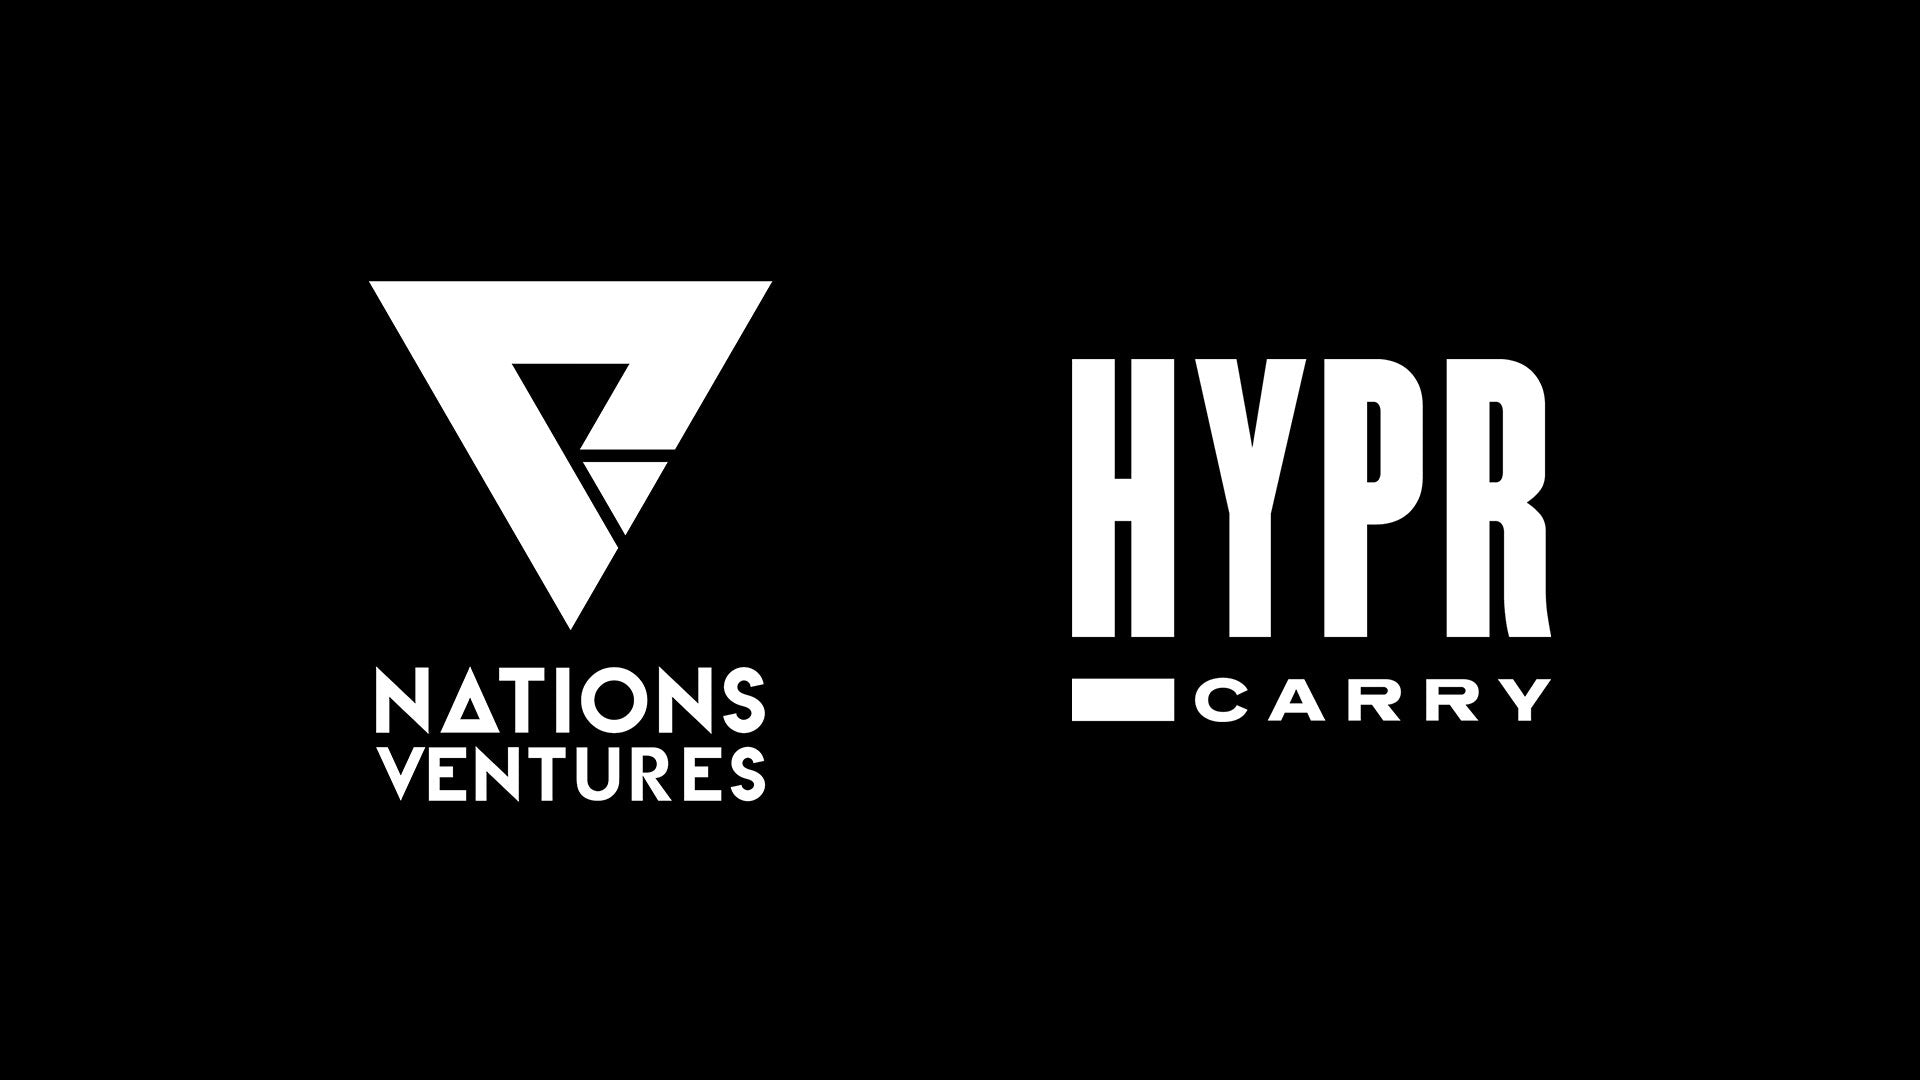 Nations Ventures Announces Investment in HYPR CARRY